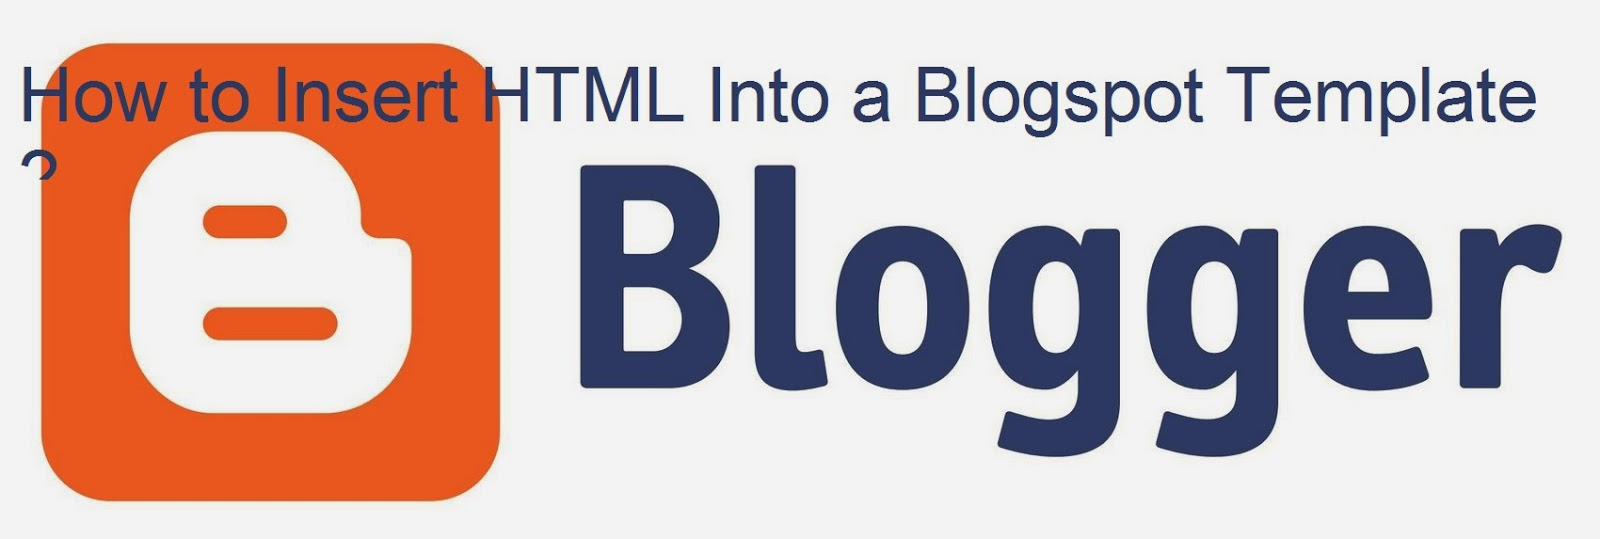 How to Insert HTML Into a Blogspot Template : eAskme